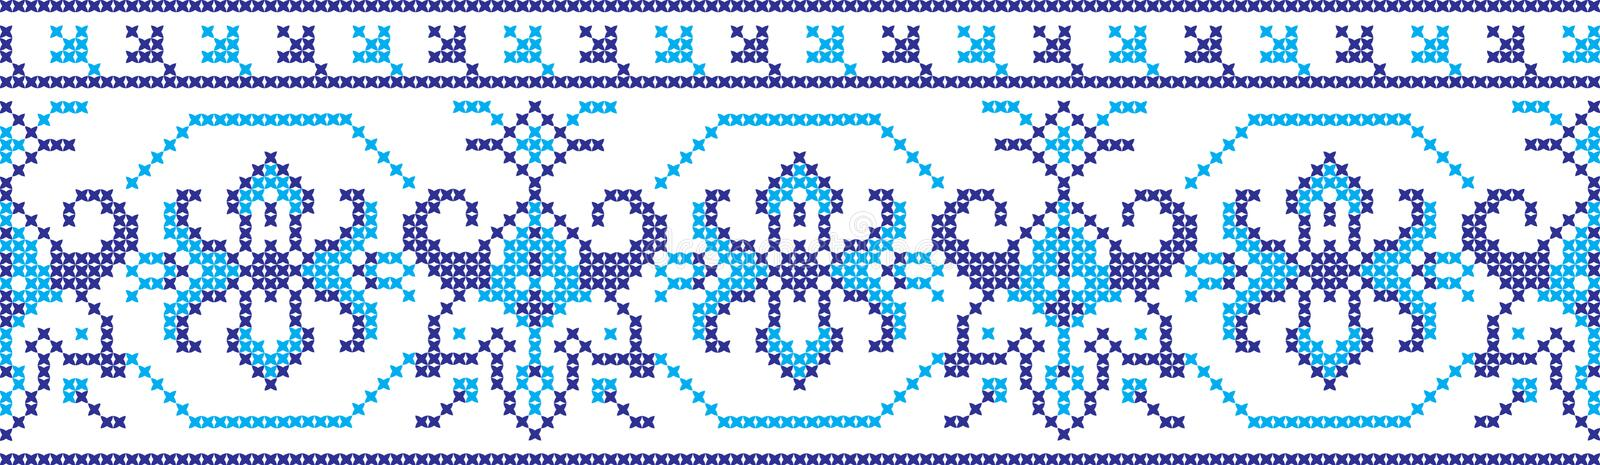 Embroidered pattern on transparent background stock images